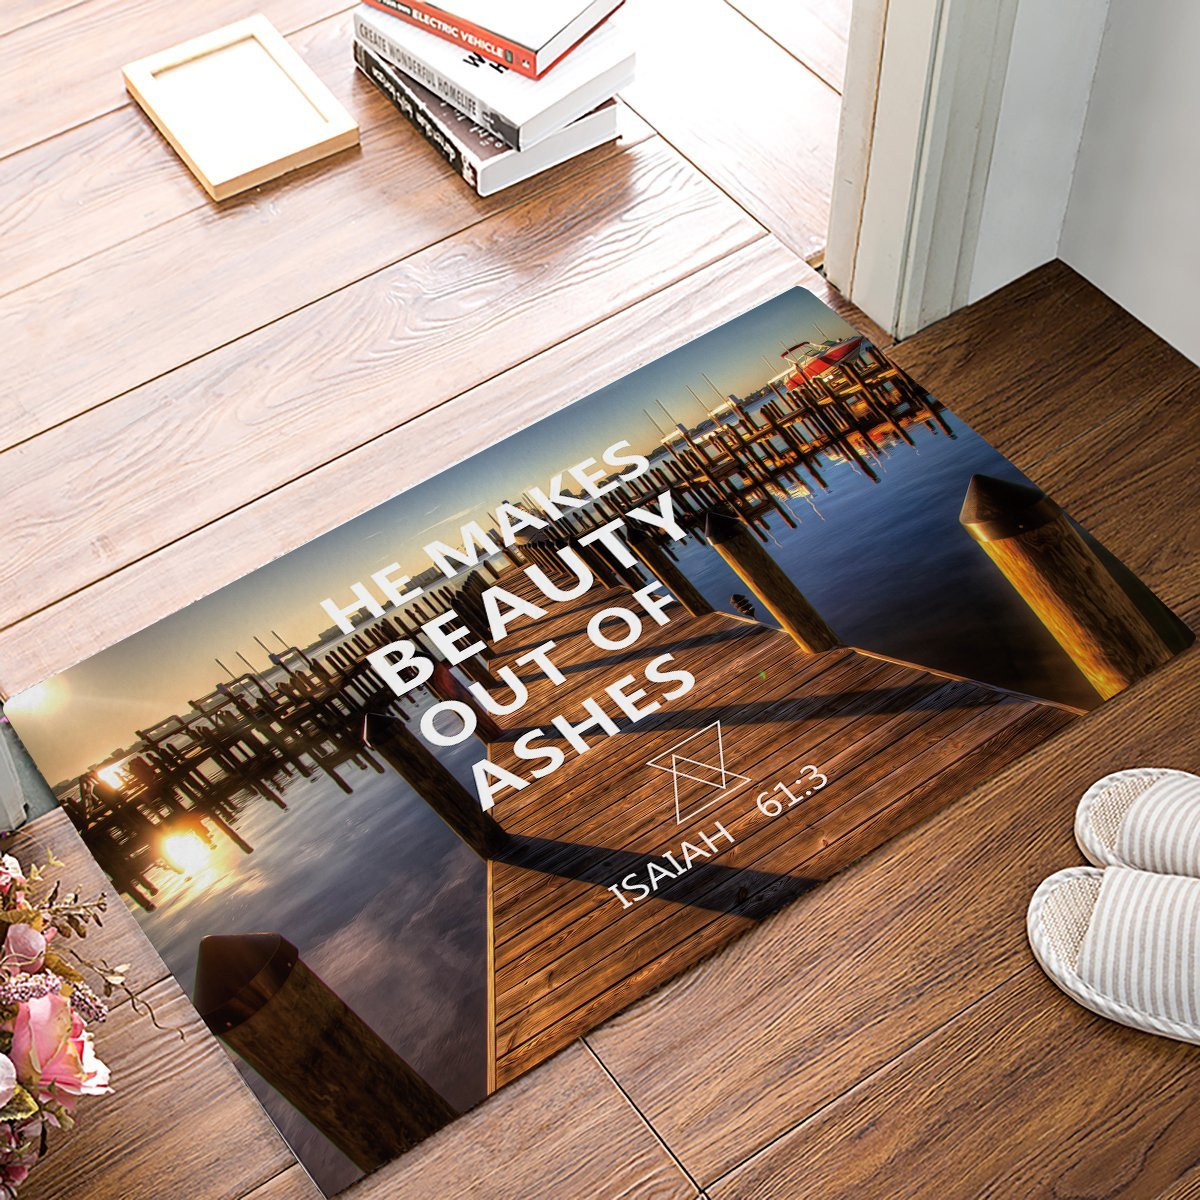 He Makes Beauty Out Of Ashes - Beautiful Waterscape Door Mats Kitchen Floor Bath Entrance Rug Mat Absorbent Indoor Bathroom